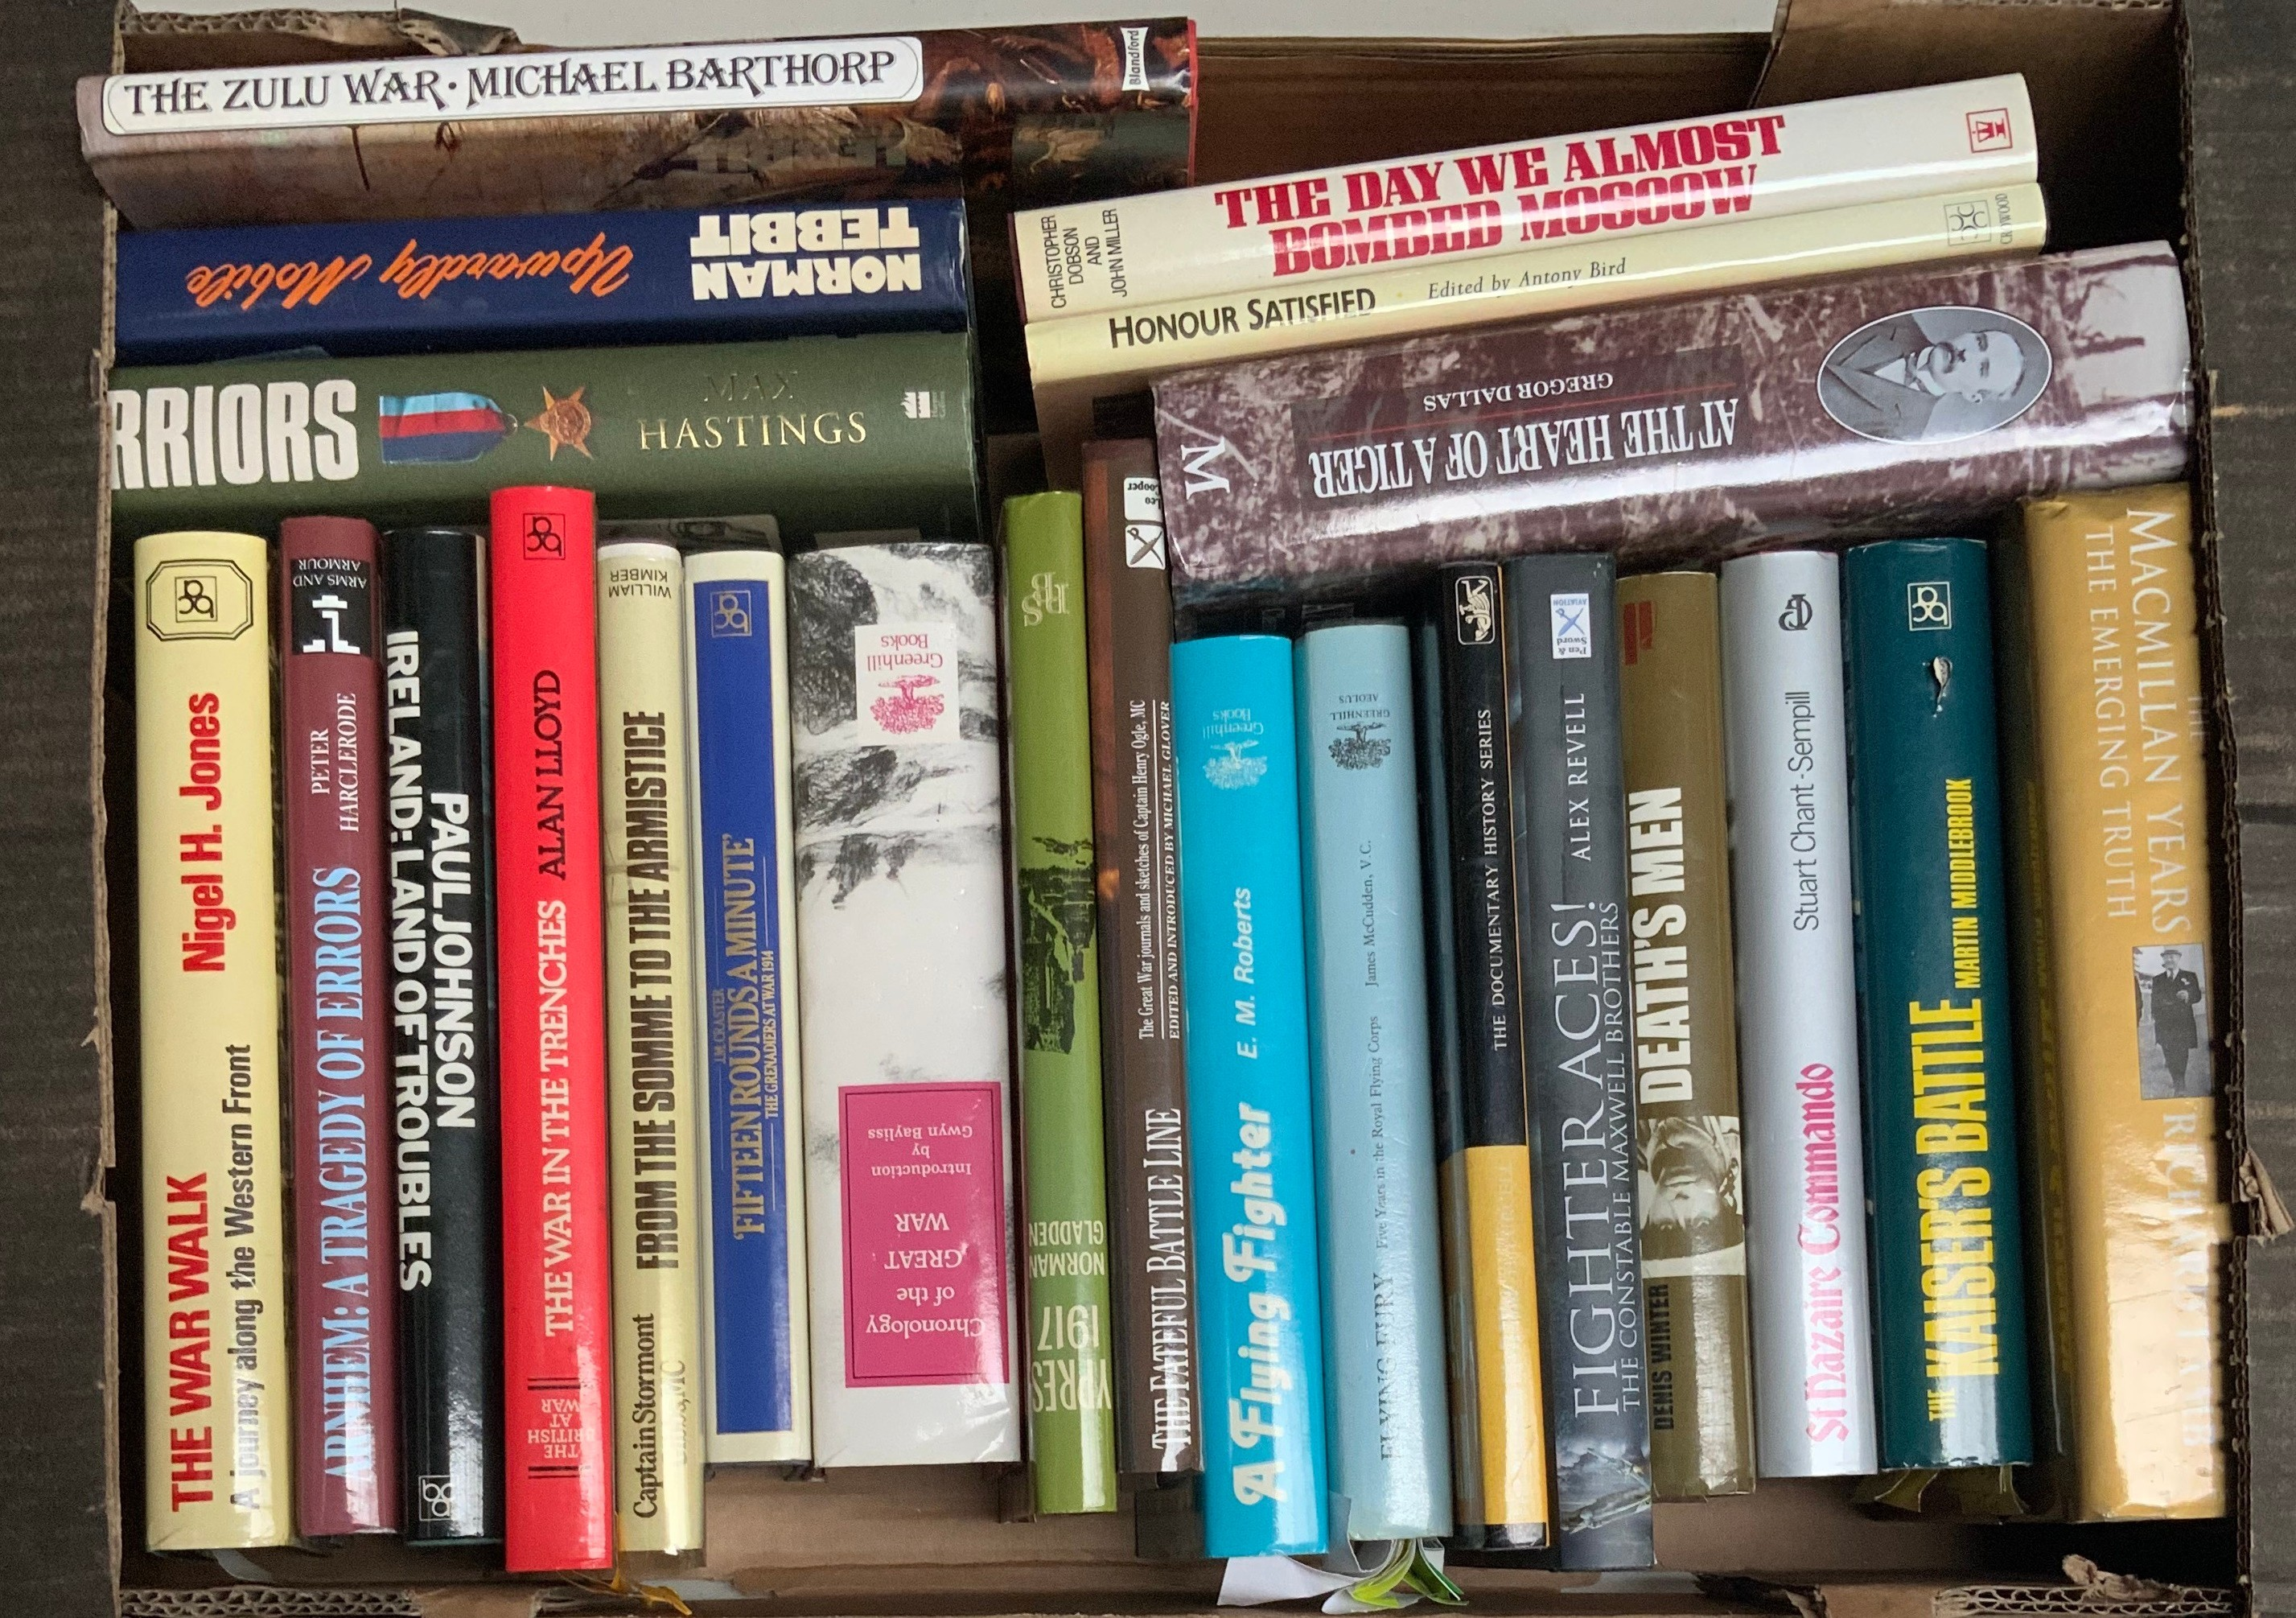 SELECTION OF VARIOUS BOOKS (SOME MILITARY RELATED)